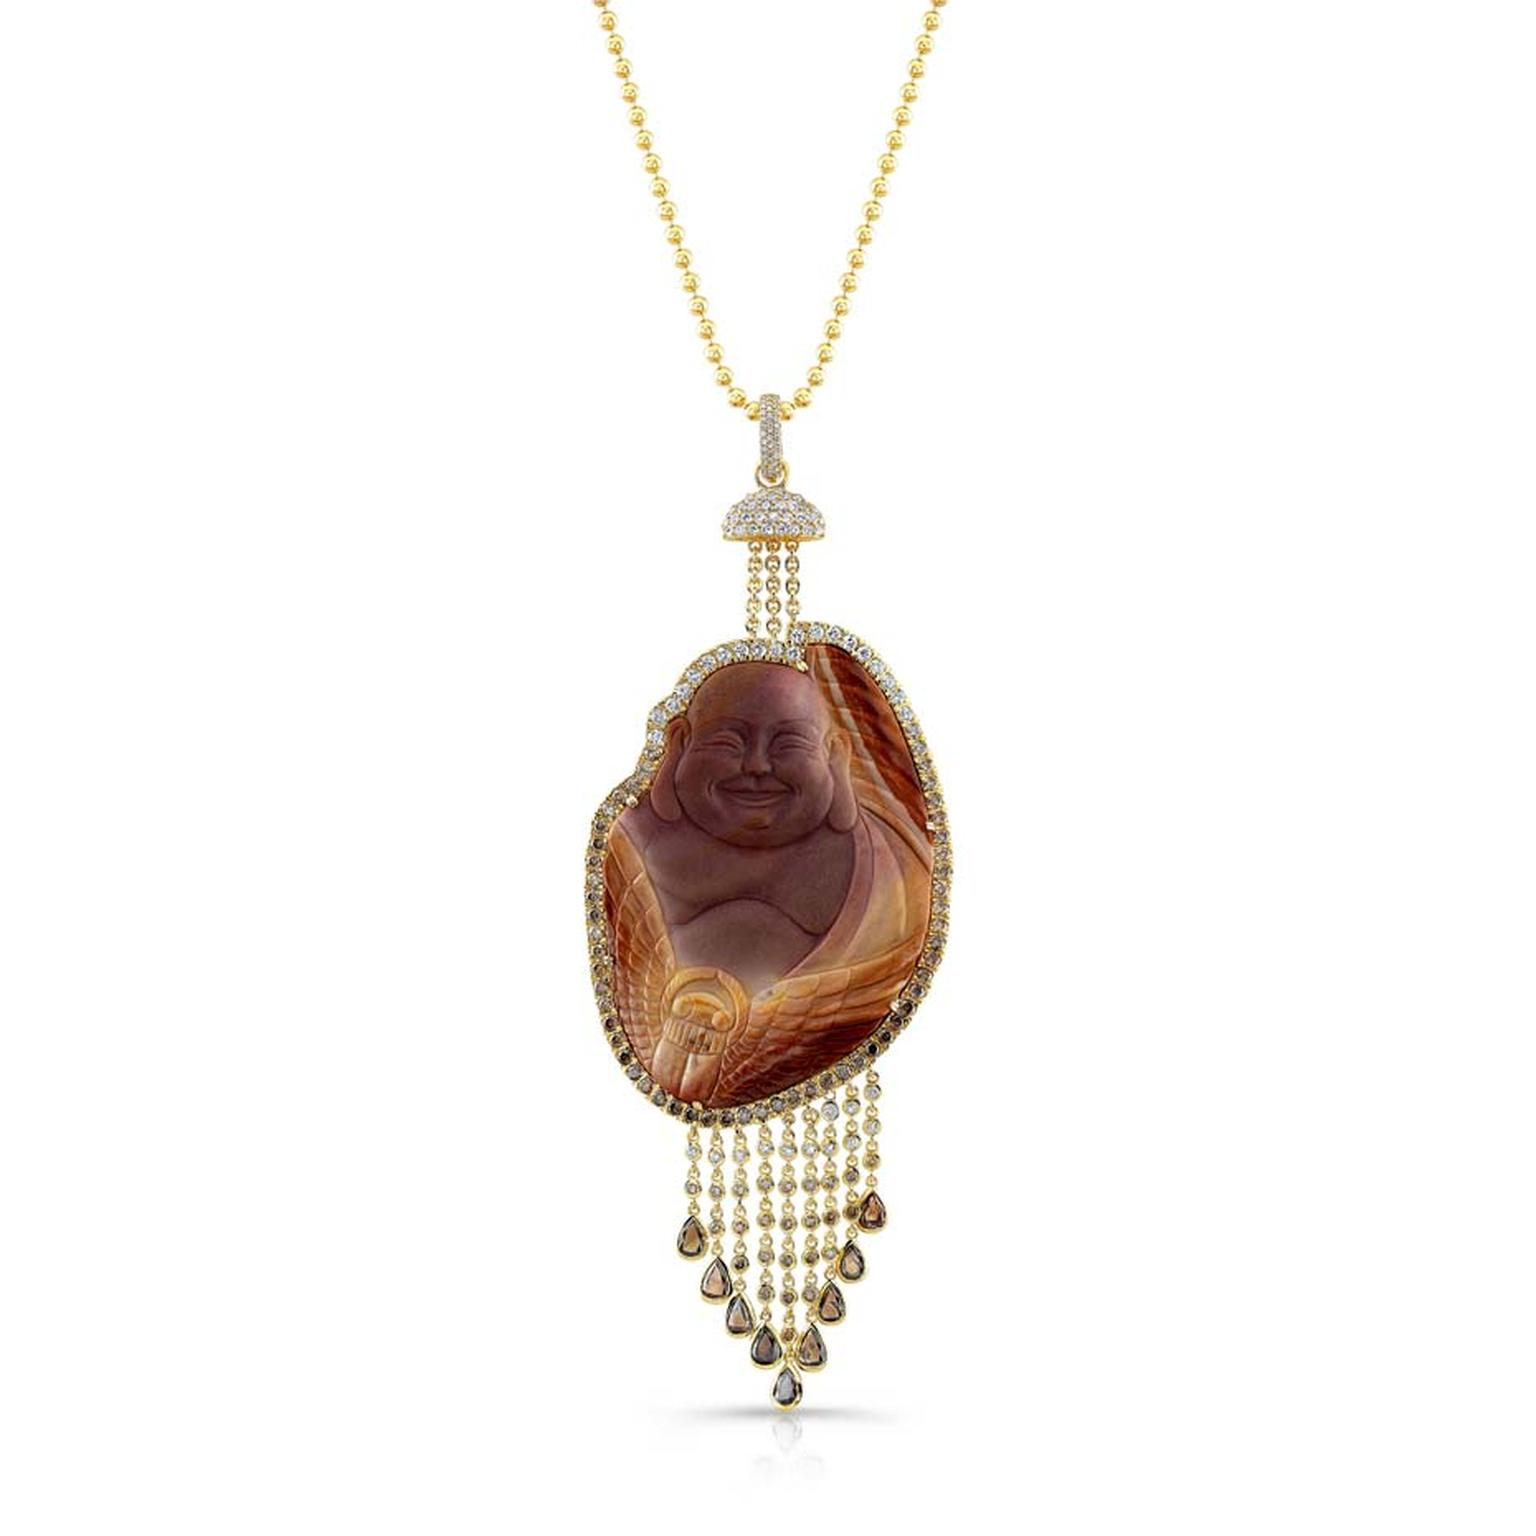 Buddha Mama one-of-a-kind hand-carved jasper Buddha necklace set with brown and white diamonds ($29,400).